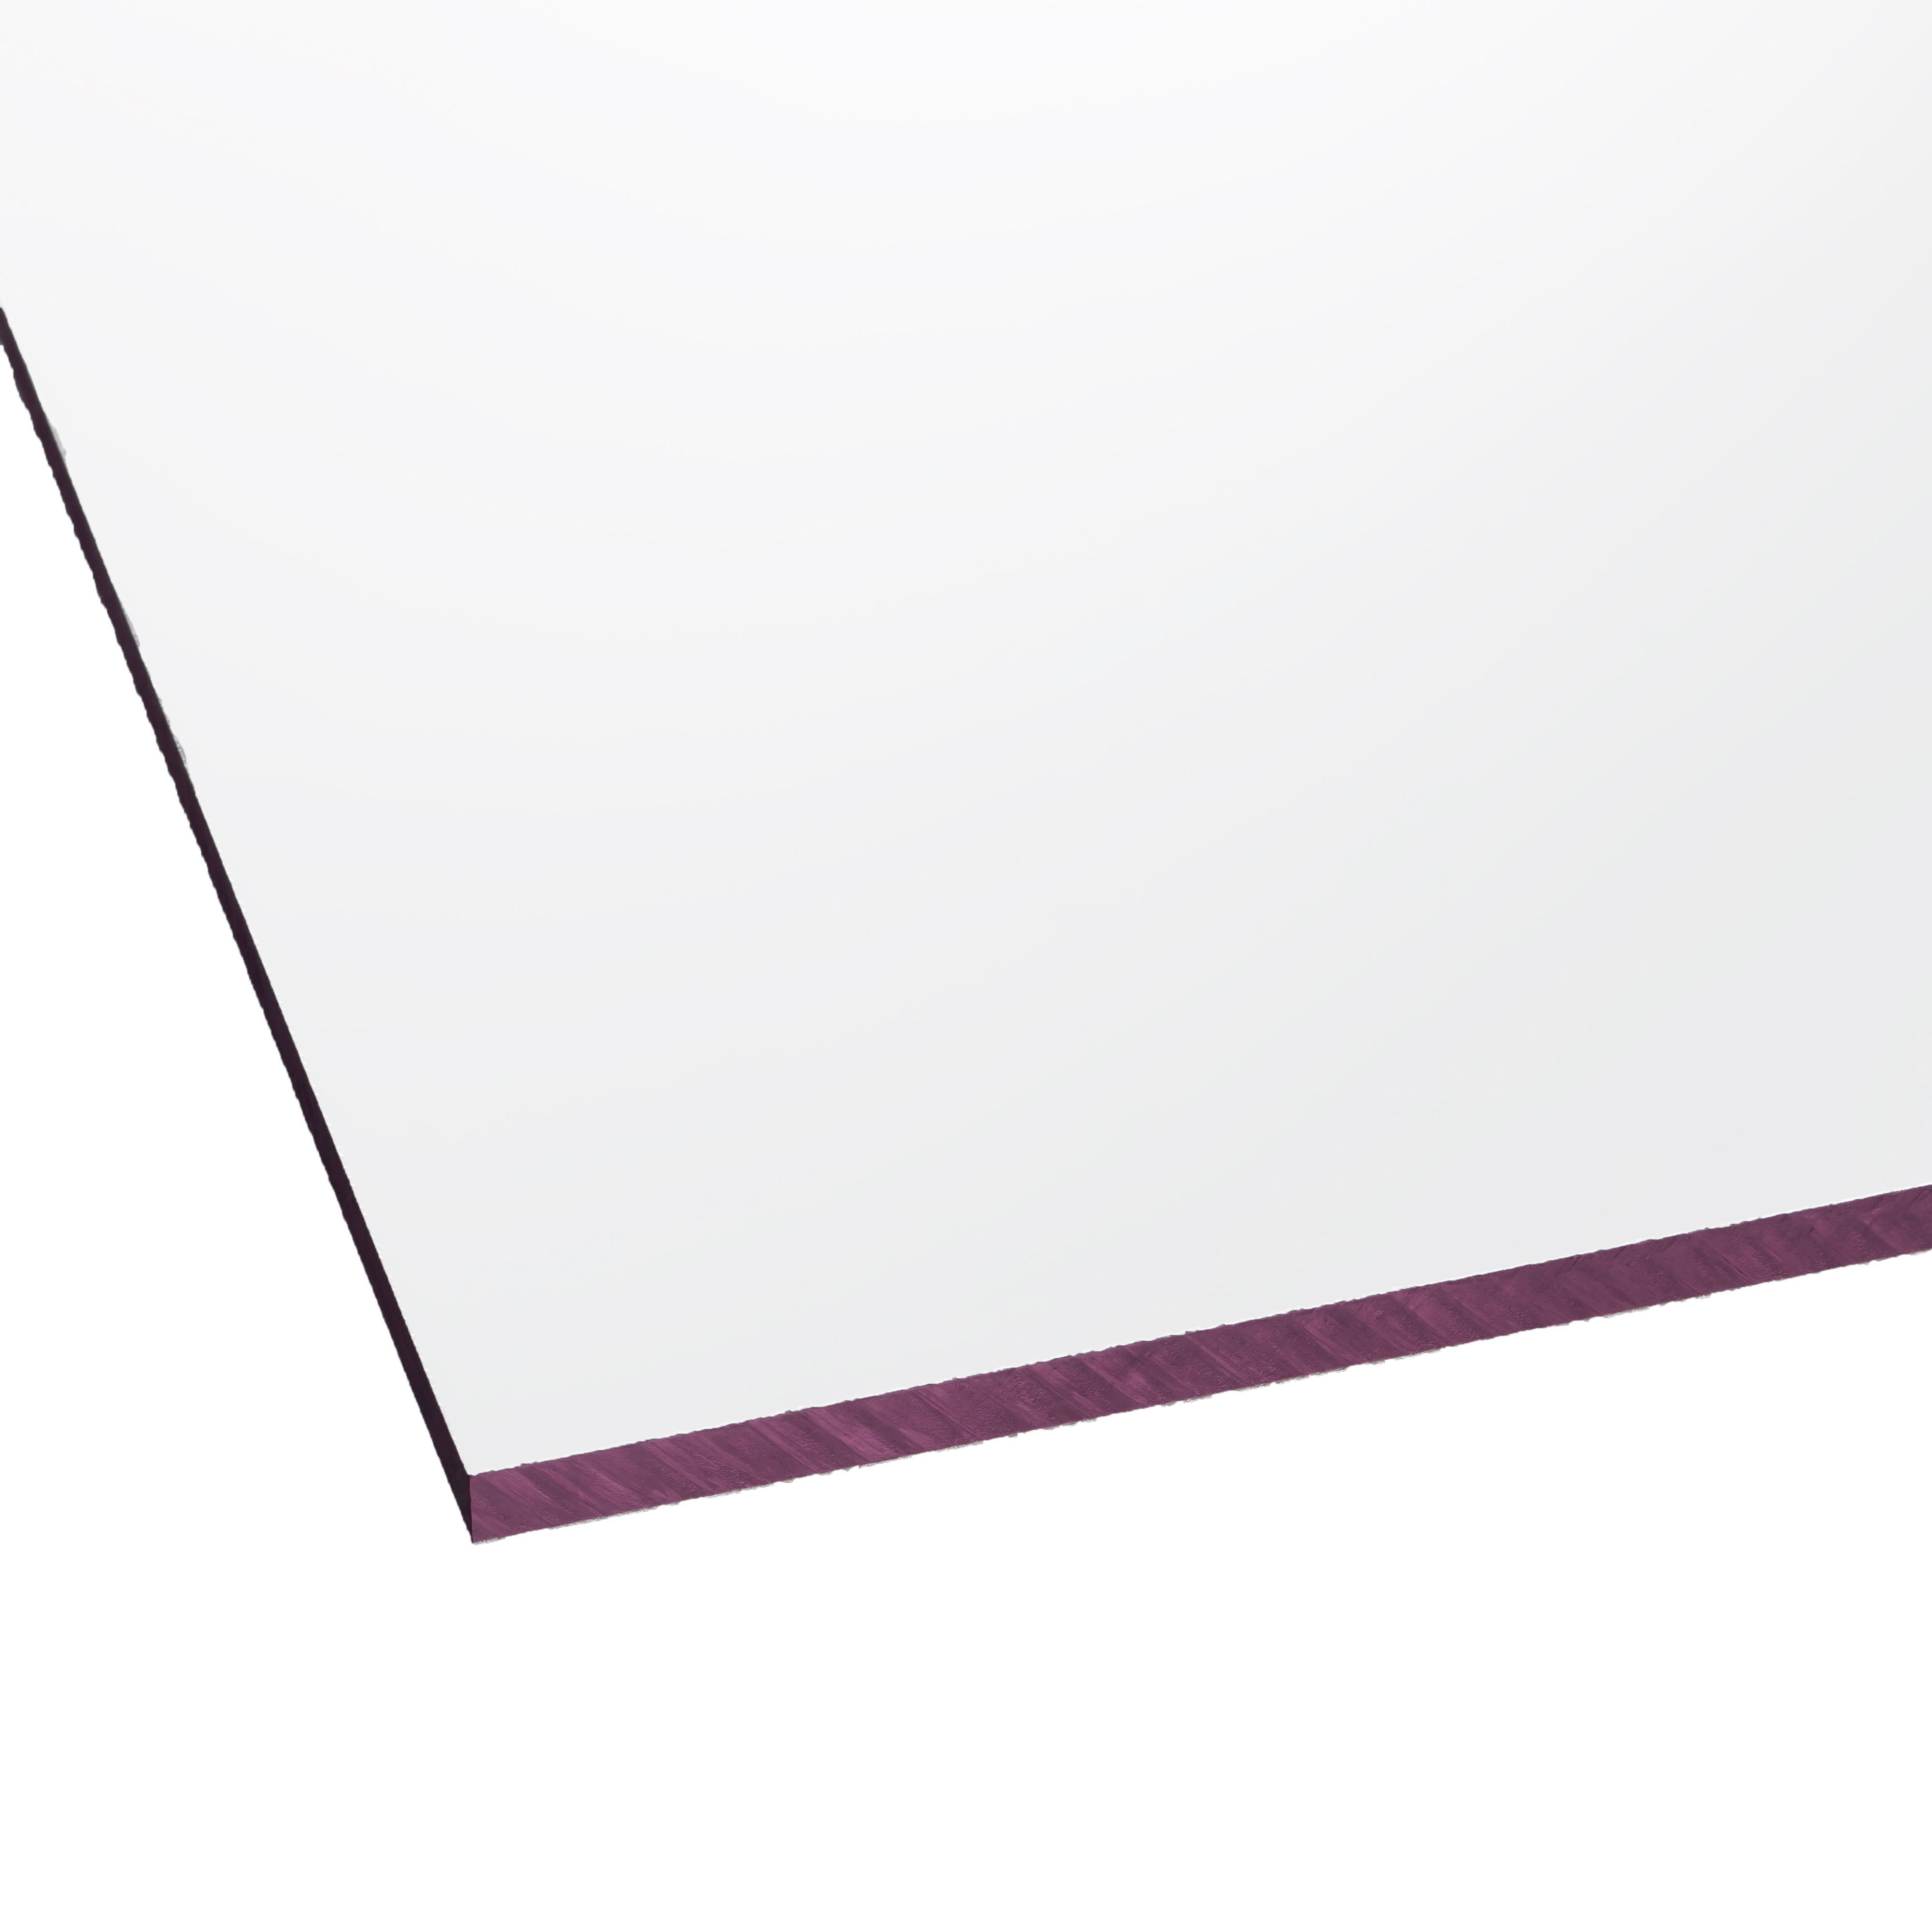 Clear Flat Polycarbonate Glazing Sheet 1220mm X 610mm, Pack Of 2